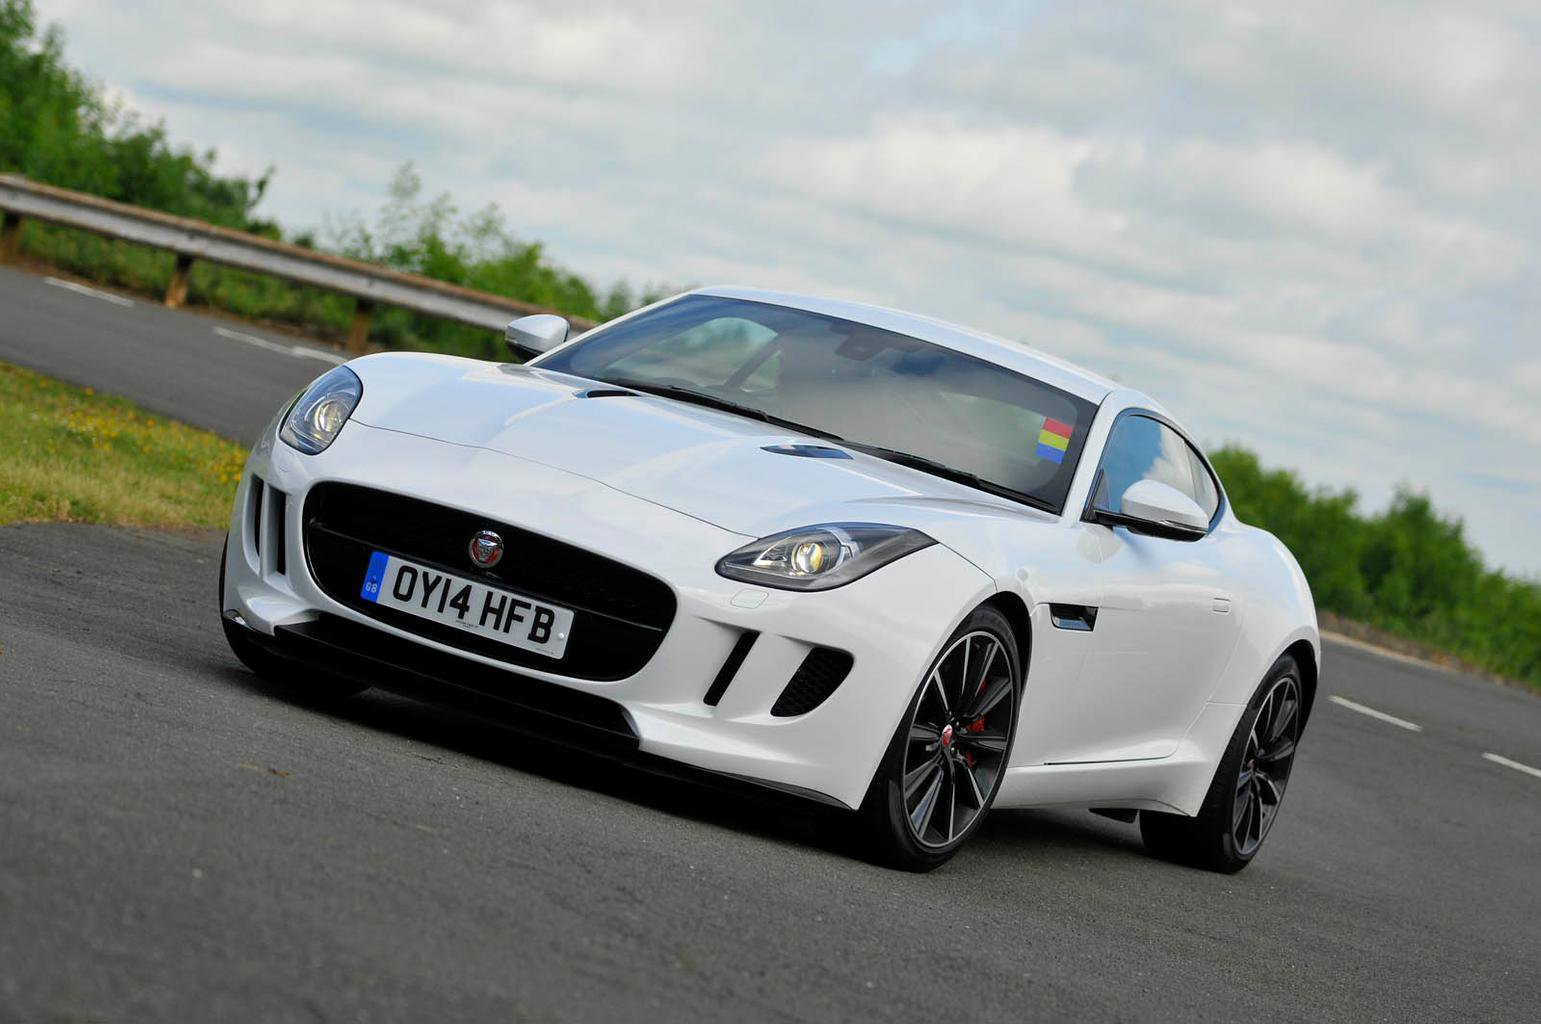 2014 Jaguar F-type Coupe V6 review